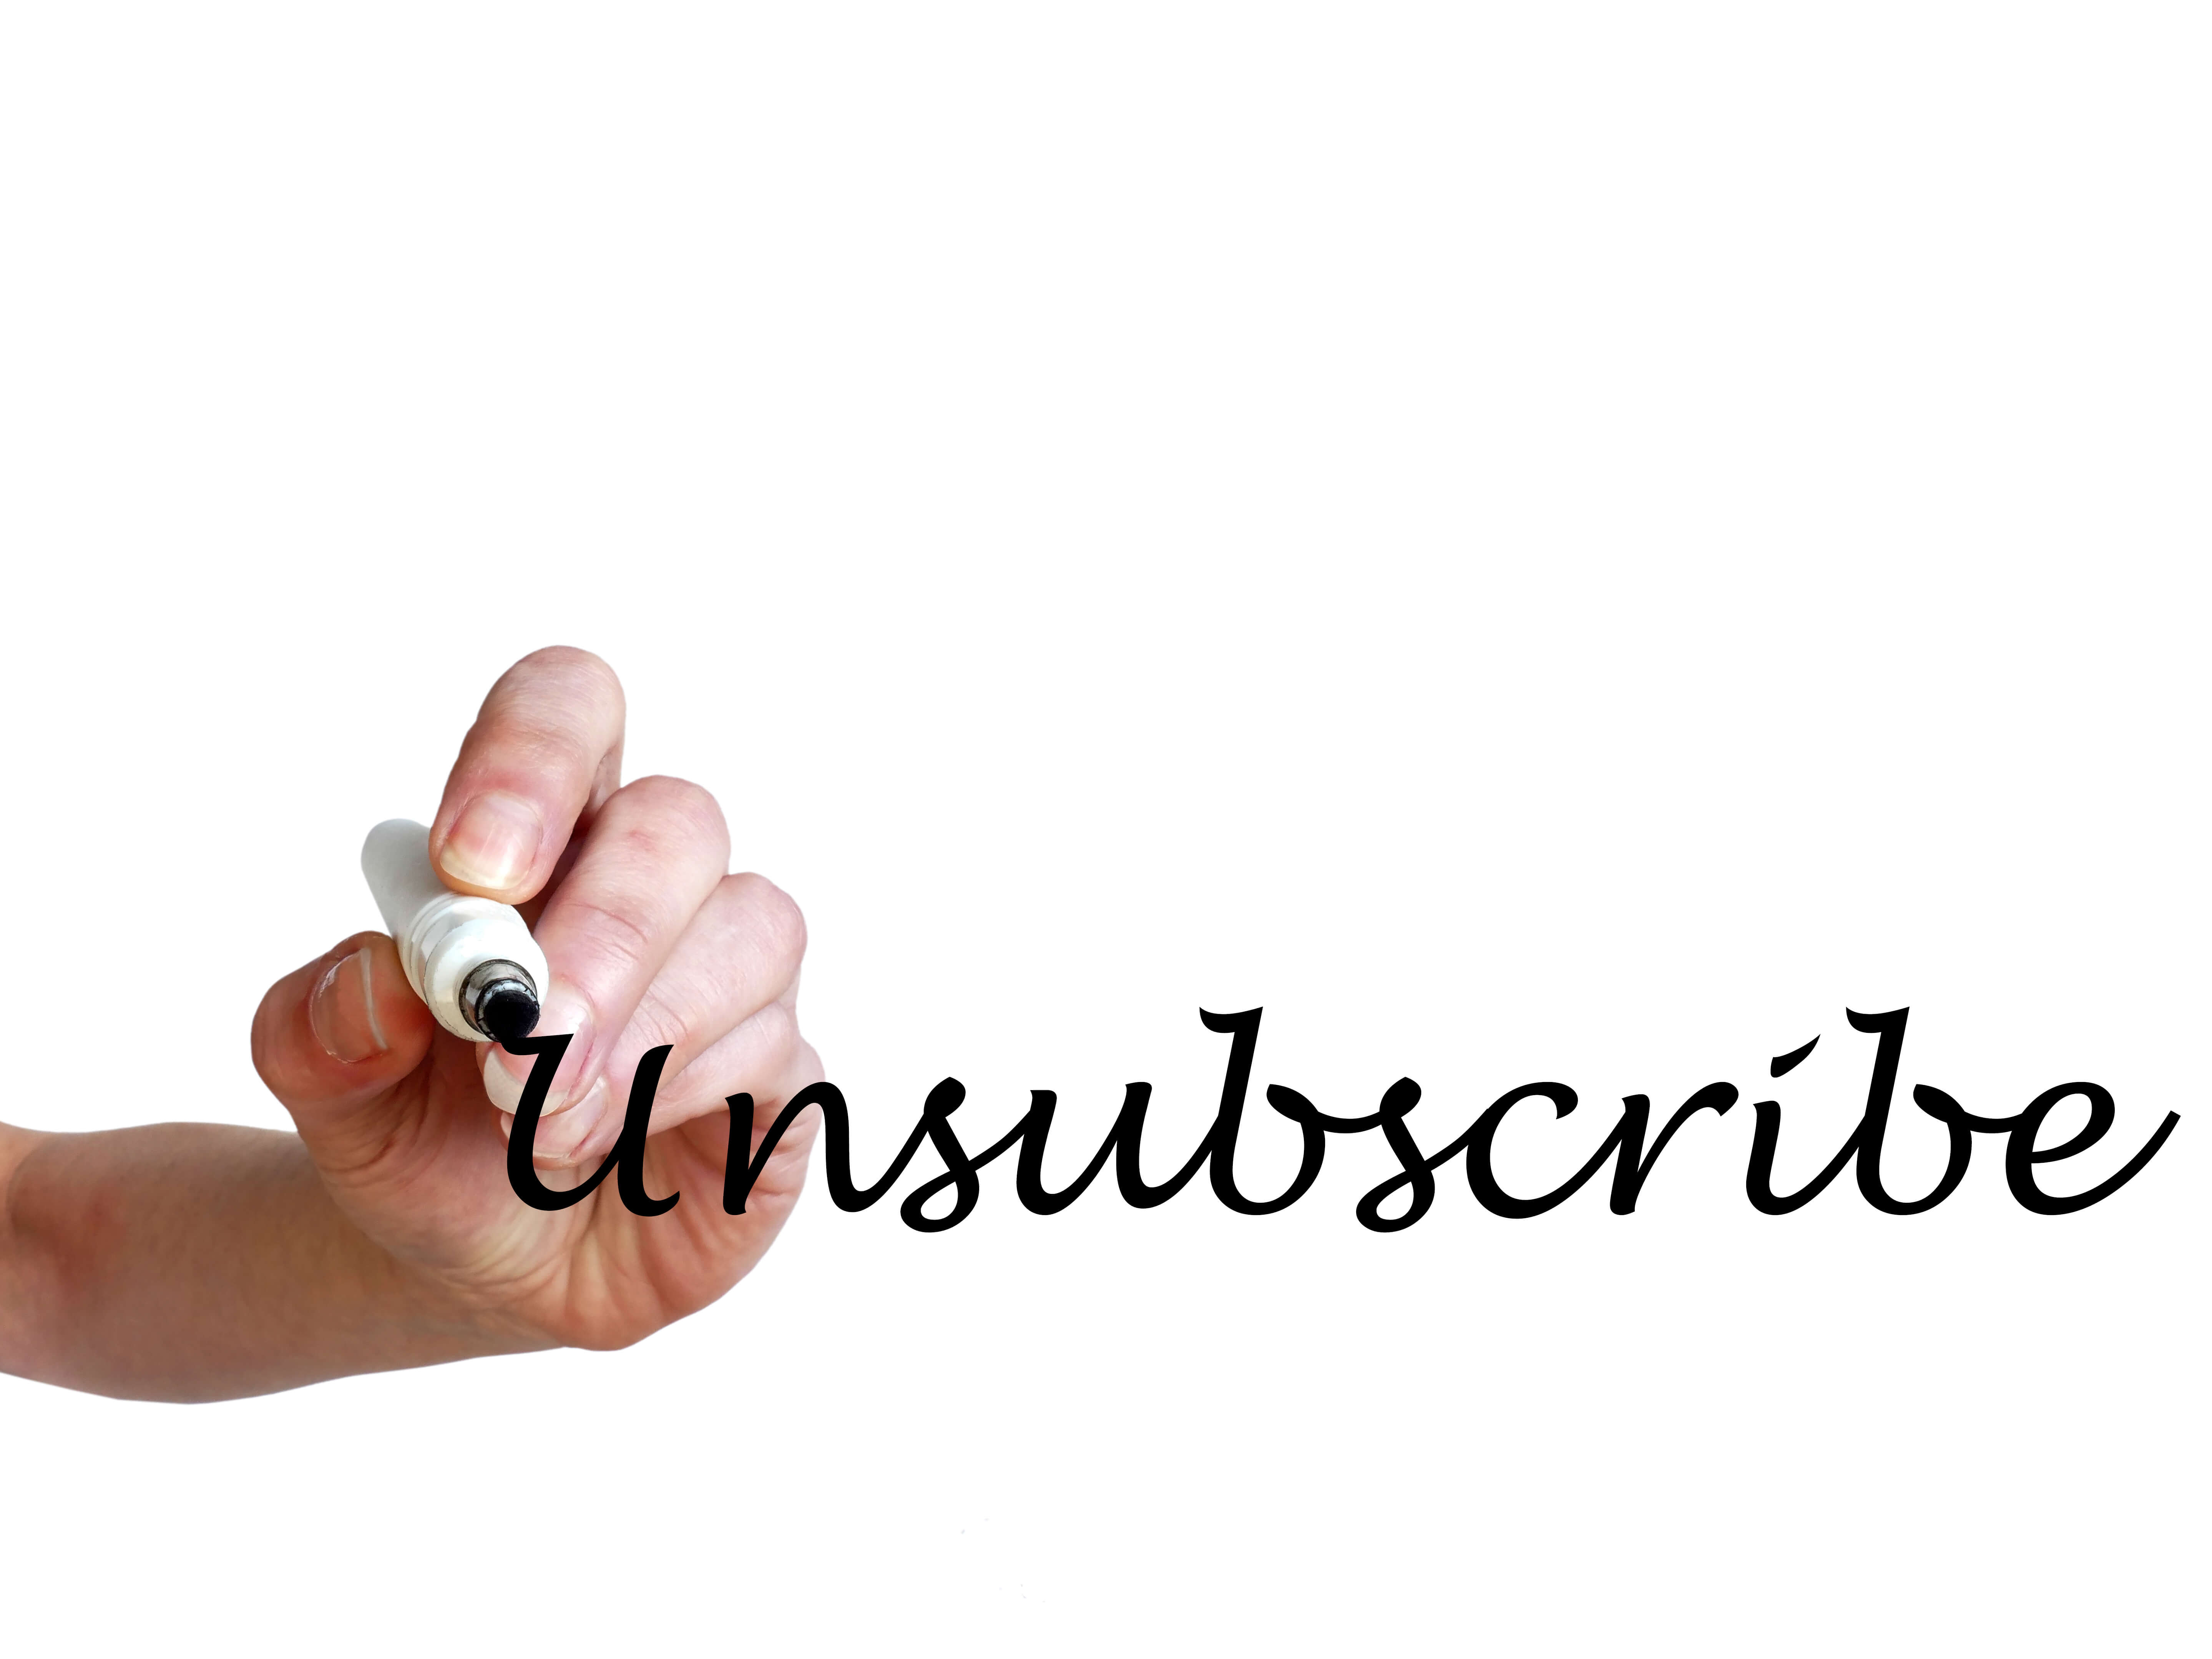 handwriting of the word Unsubscribe